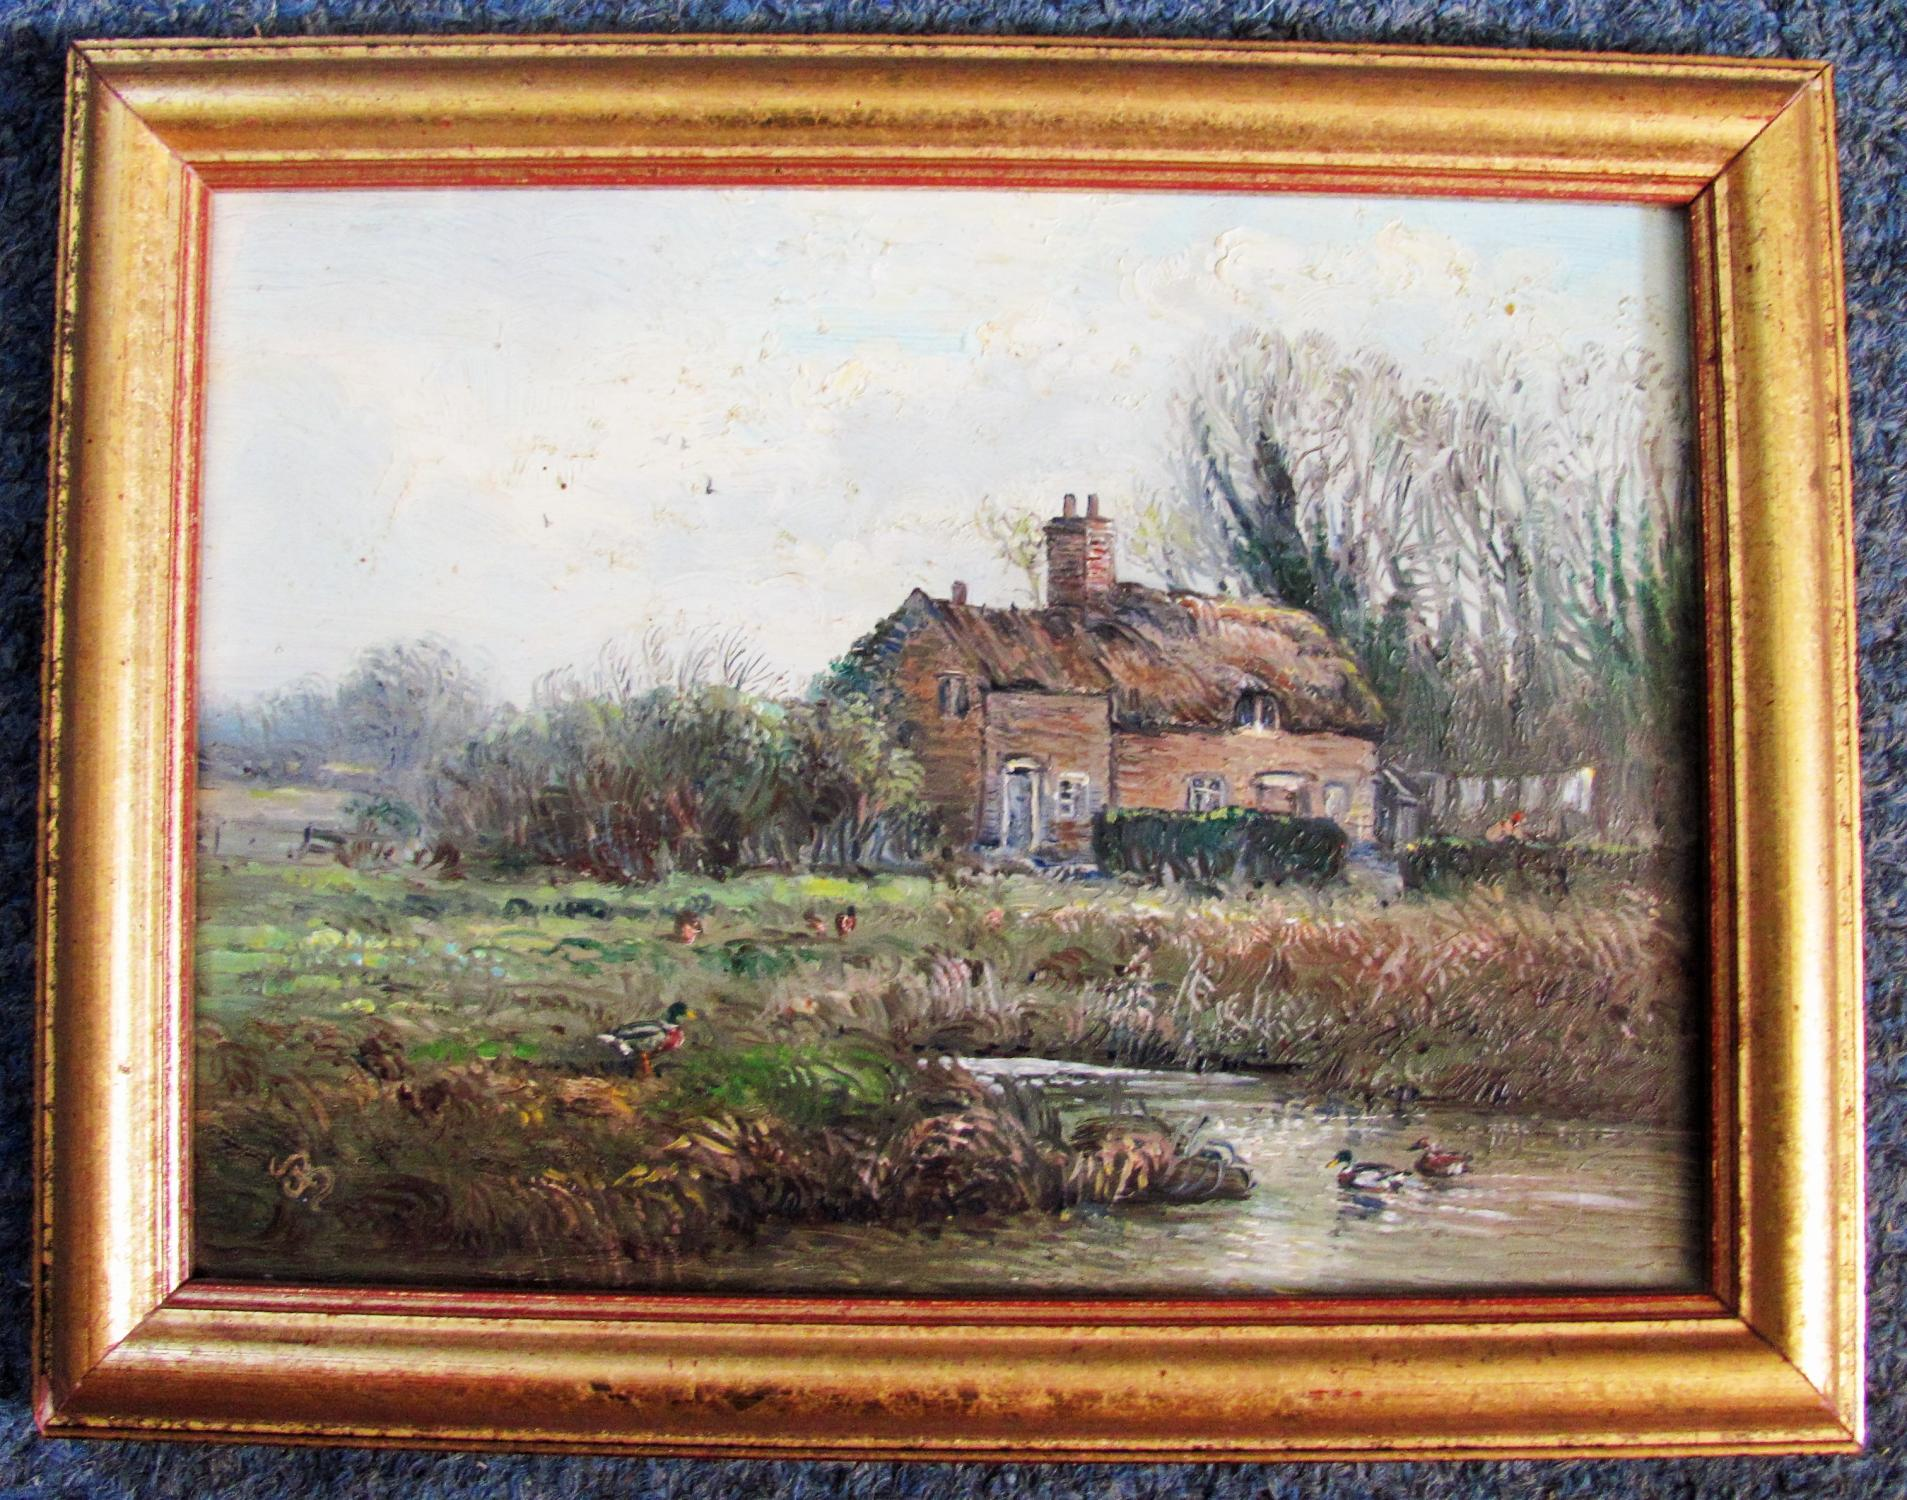 THE_OLD_HOUSE_-_ORIGINAL_OIL_PAINTING_JOHN_MACE_[Near_Fine]